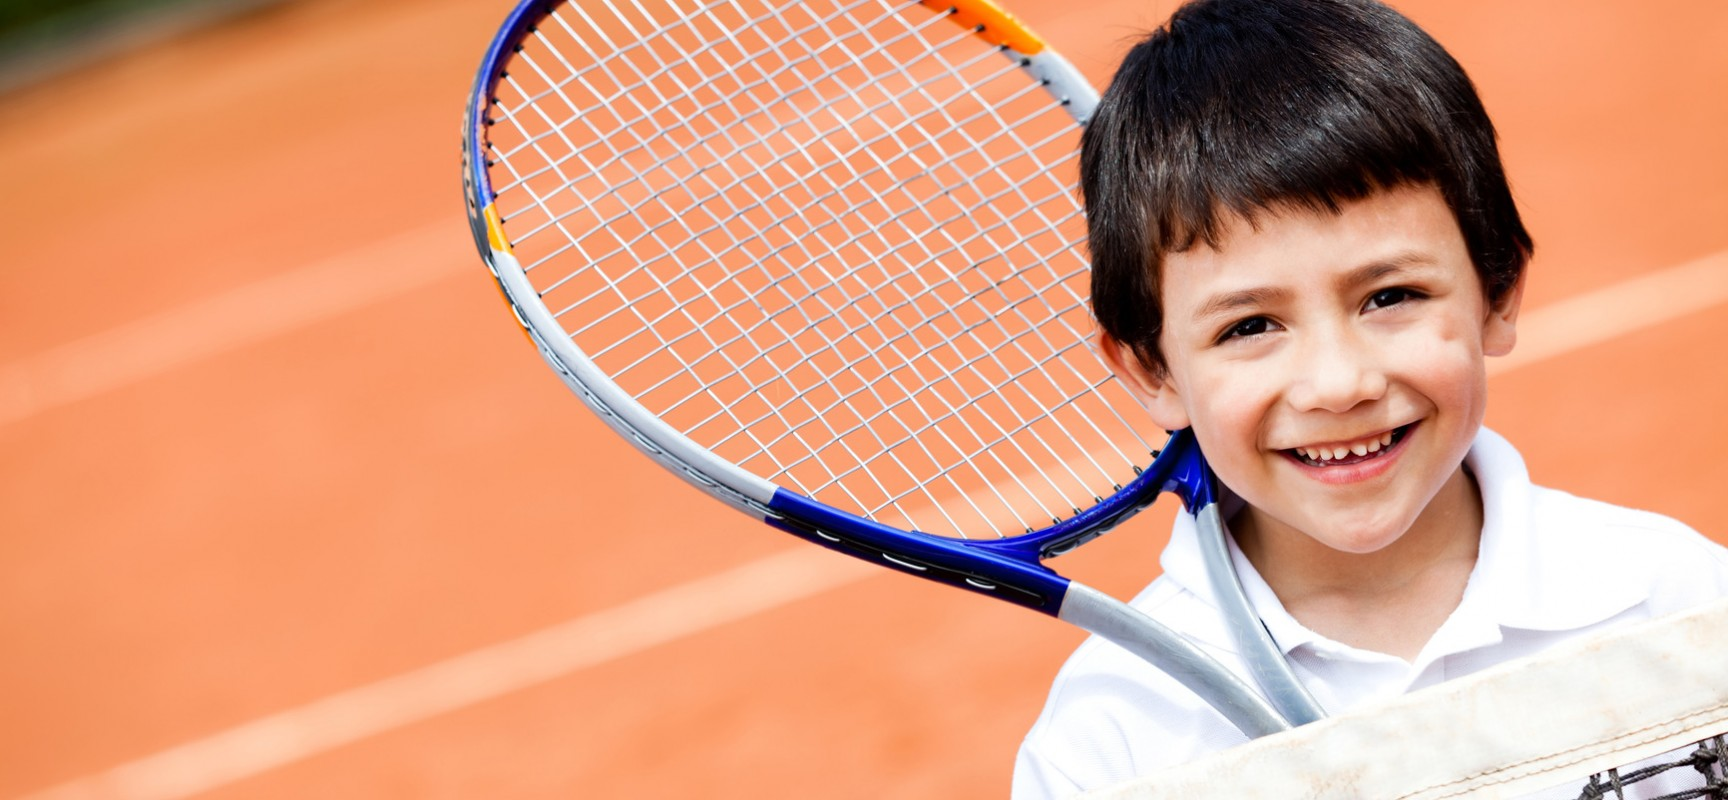 photodune-1768836-boy-playing-tennis-m1-1728x800